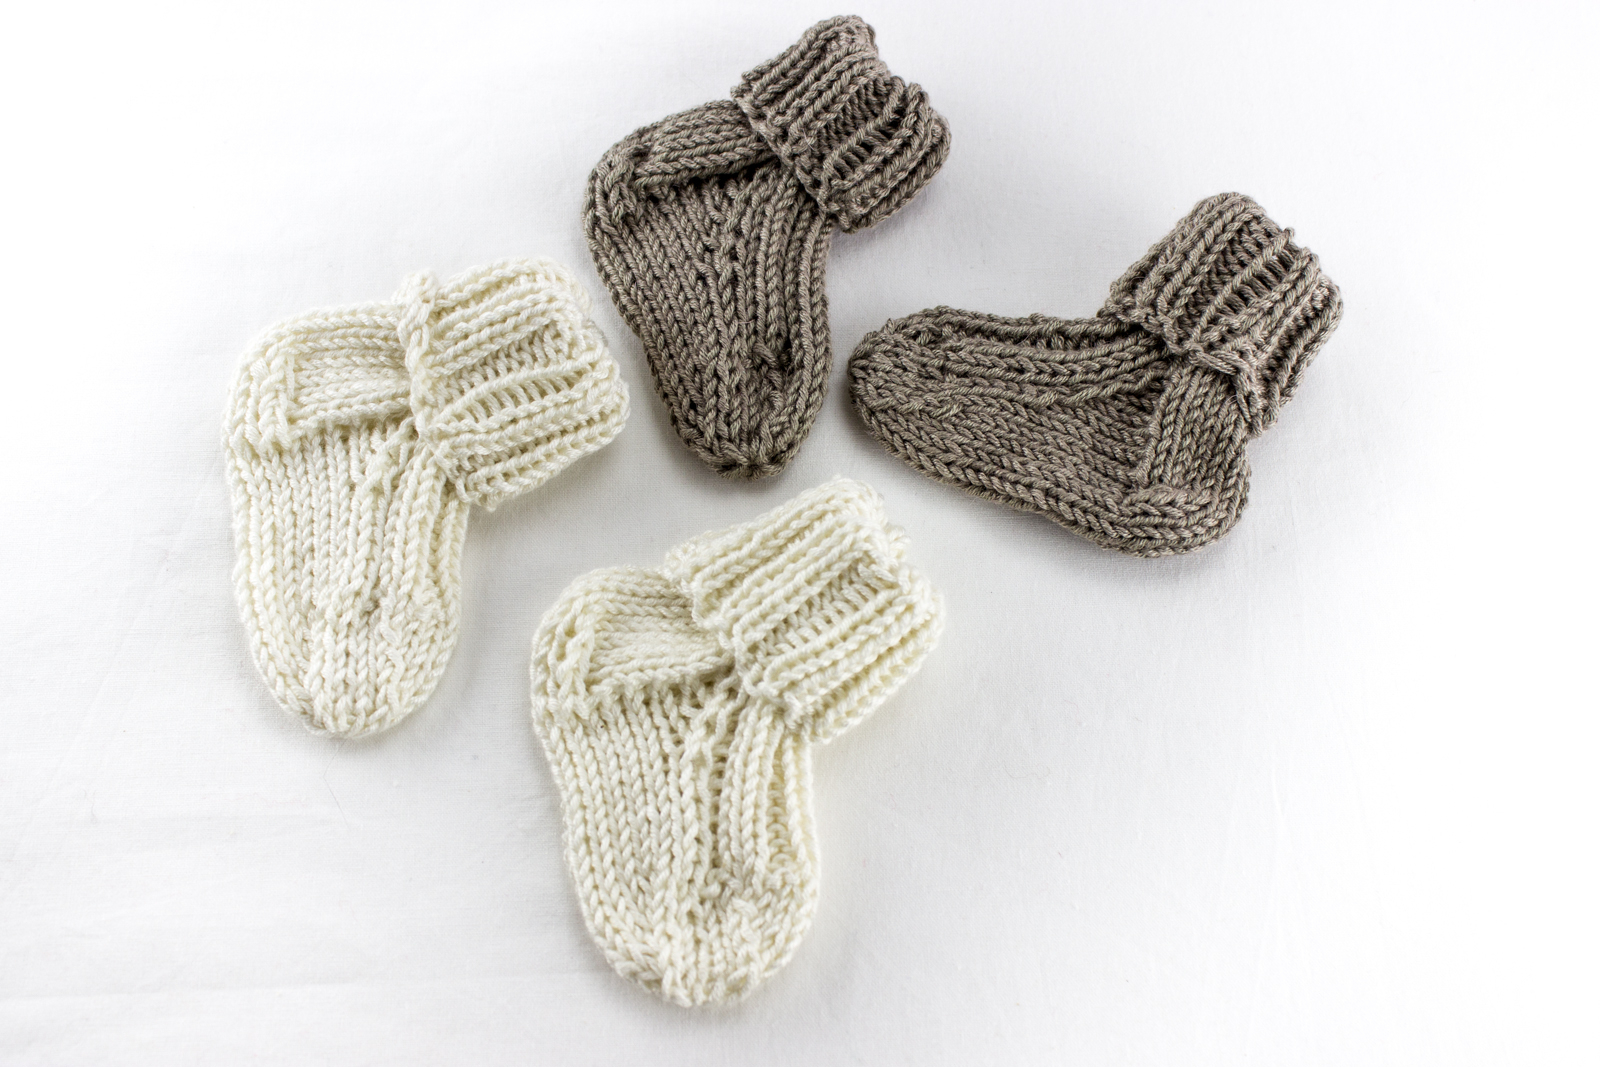 New Born Knitting Patterns Knitting Pattern Ba Socks Toddler Socks Pattern Quick Ba Socks Knitting Pattern Newborn Socks Kids Sock Pattern